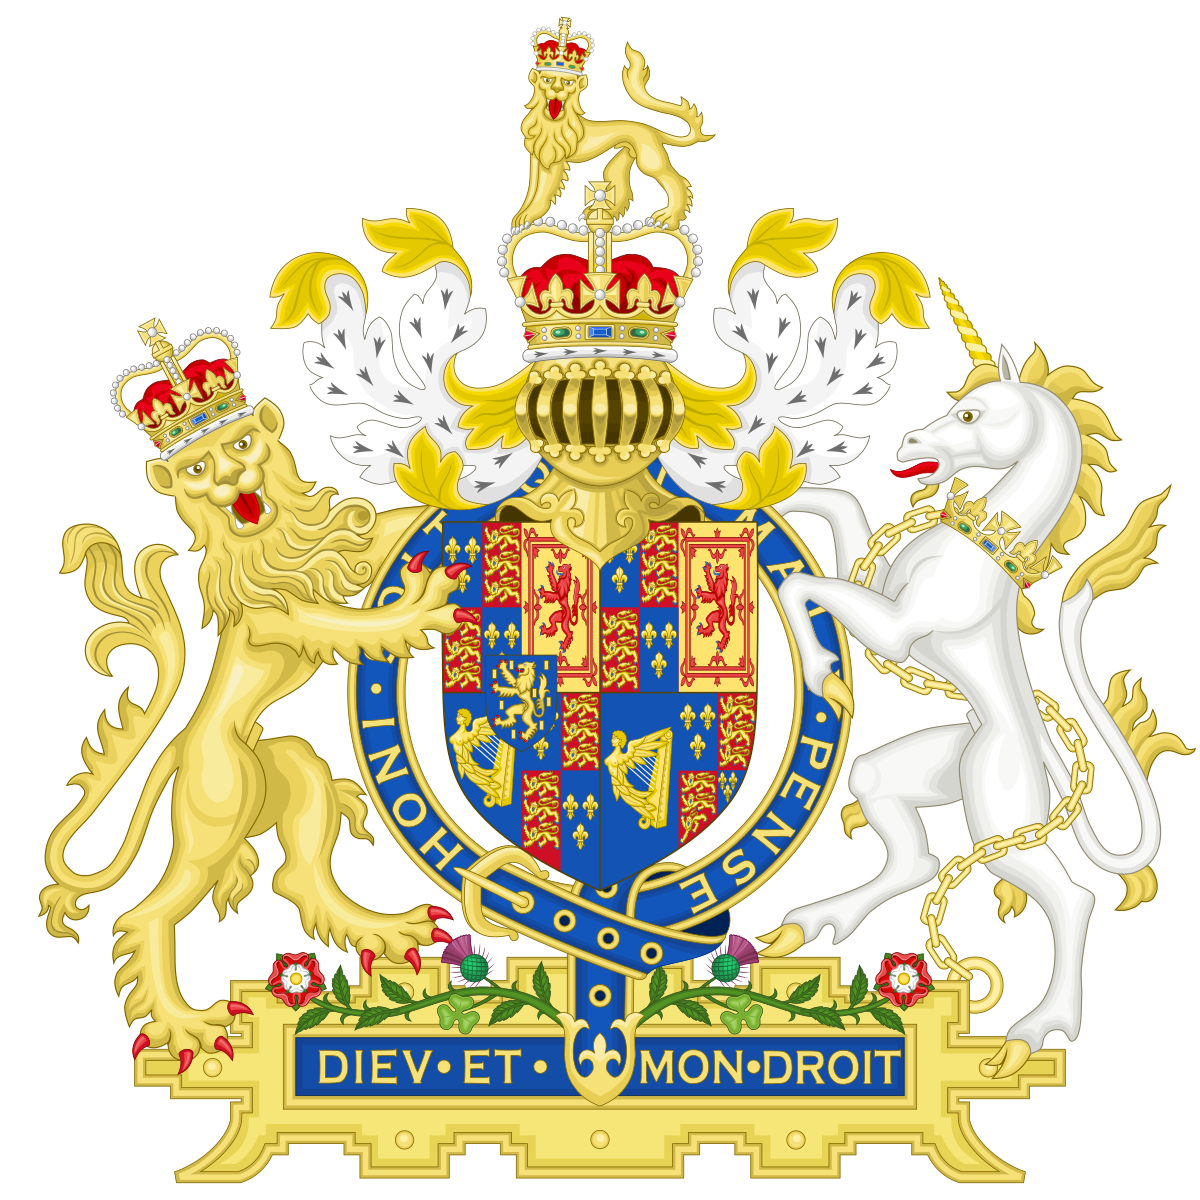 Constitution clipart constitutional monarchy. Bill of rights wikipedia